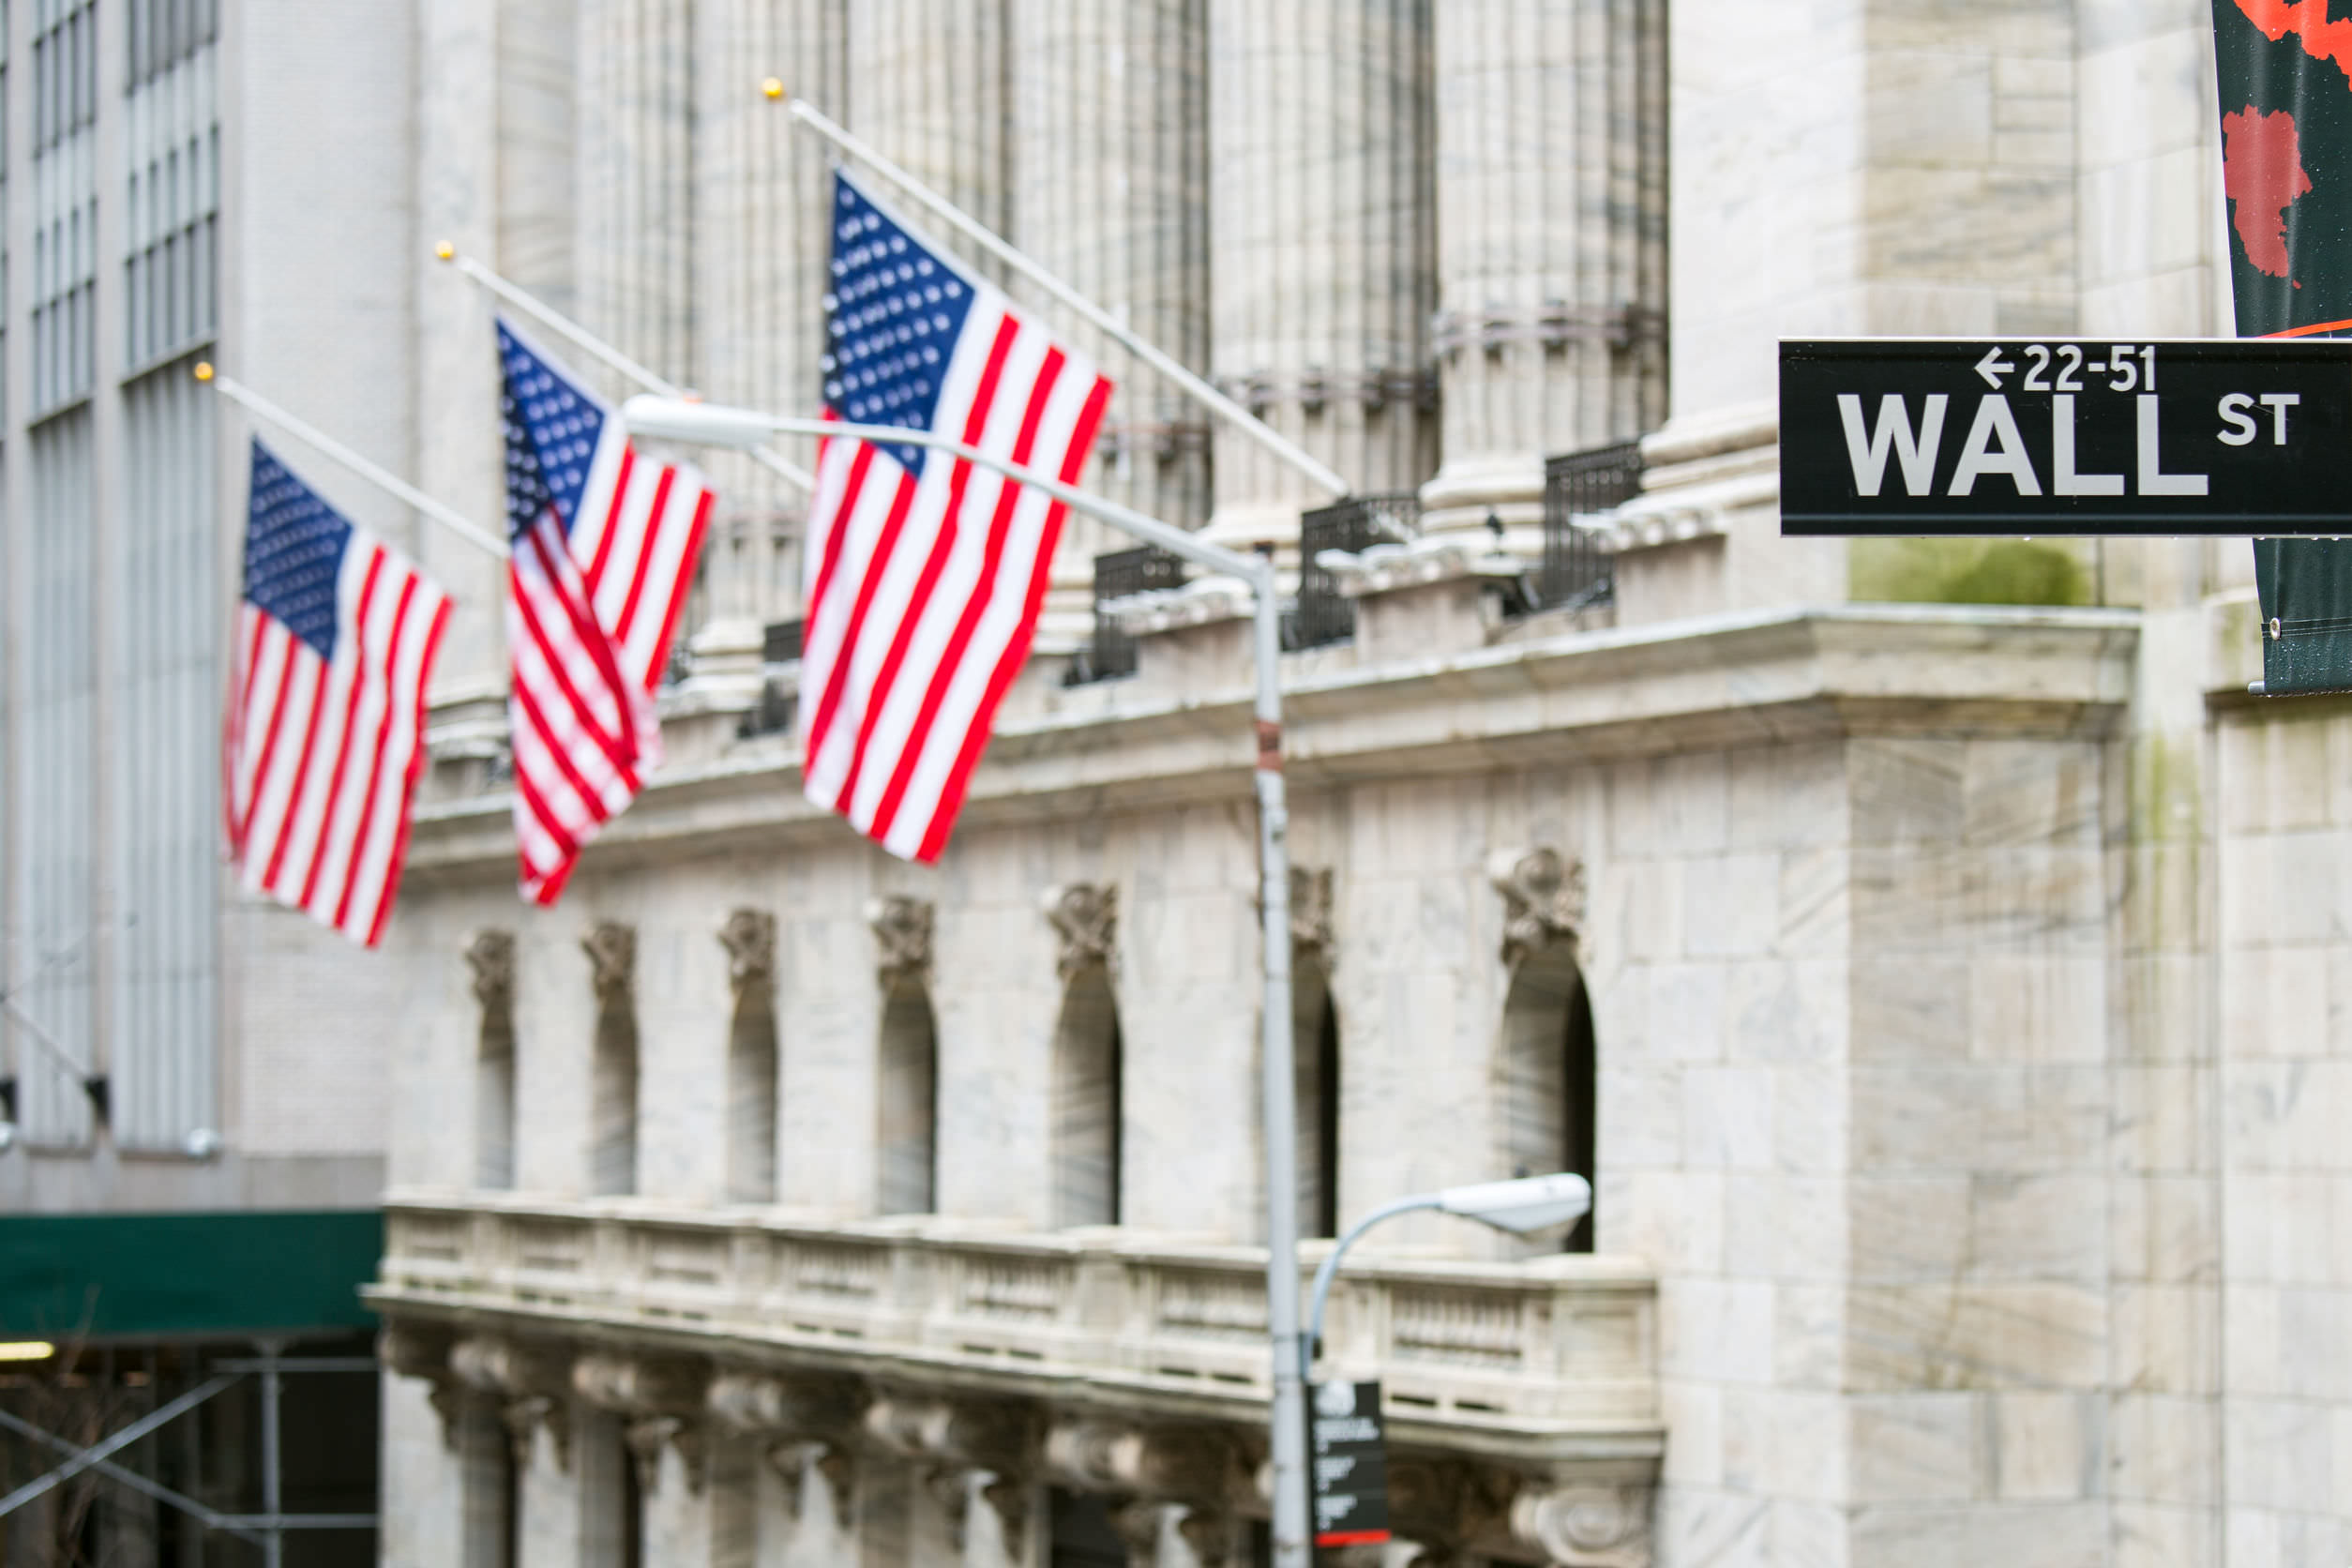 CannTrust's low stock price prompts another NYSE warning!